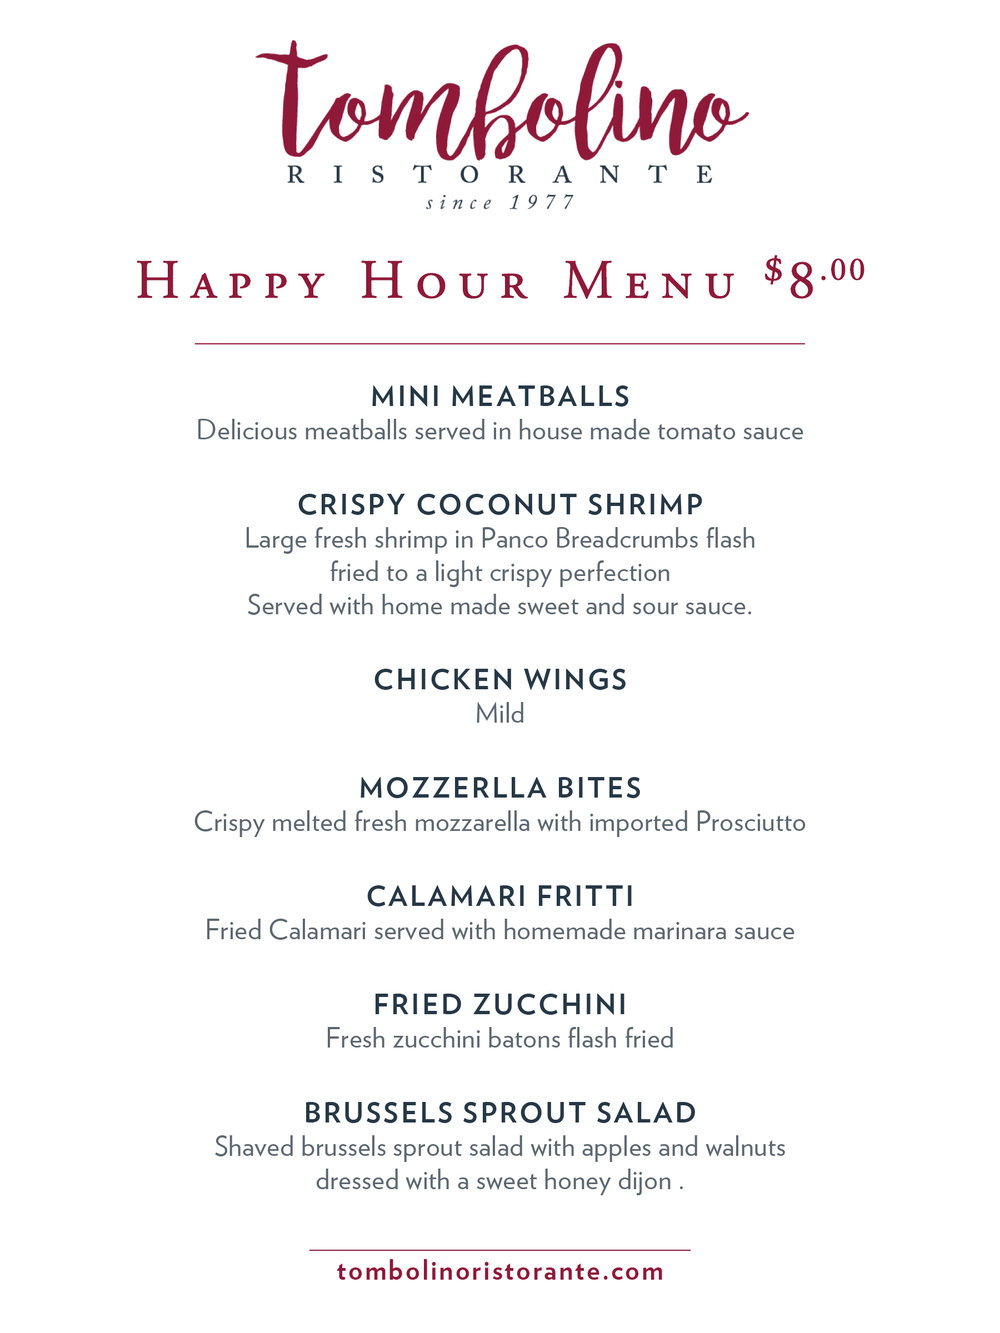 00000729_Tombolino_HappyHour_Menu_1.2.jpg